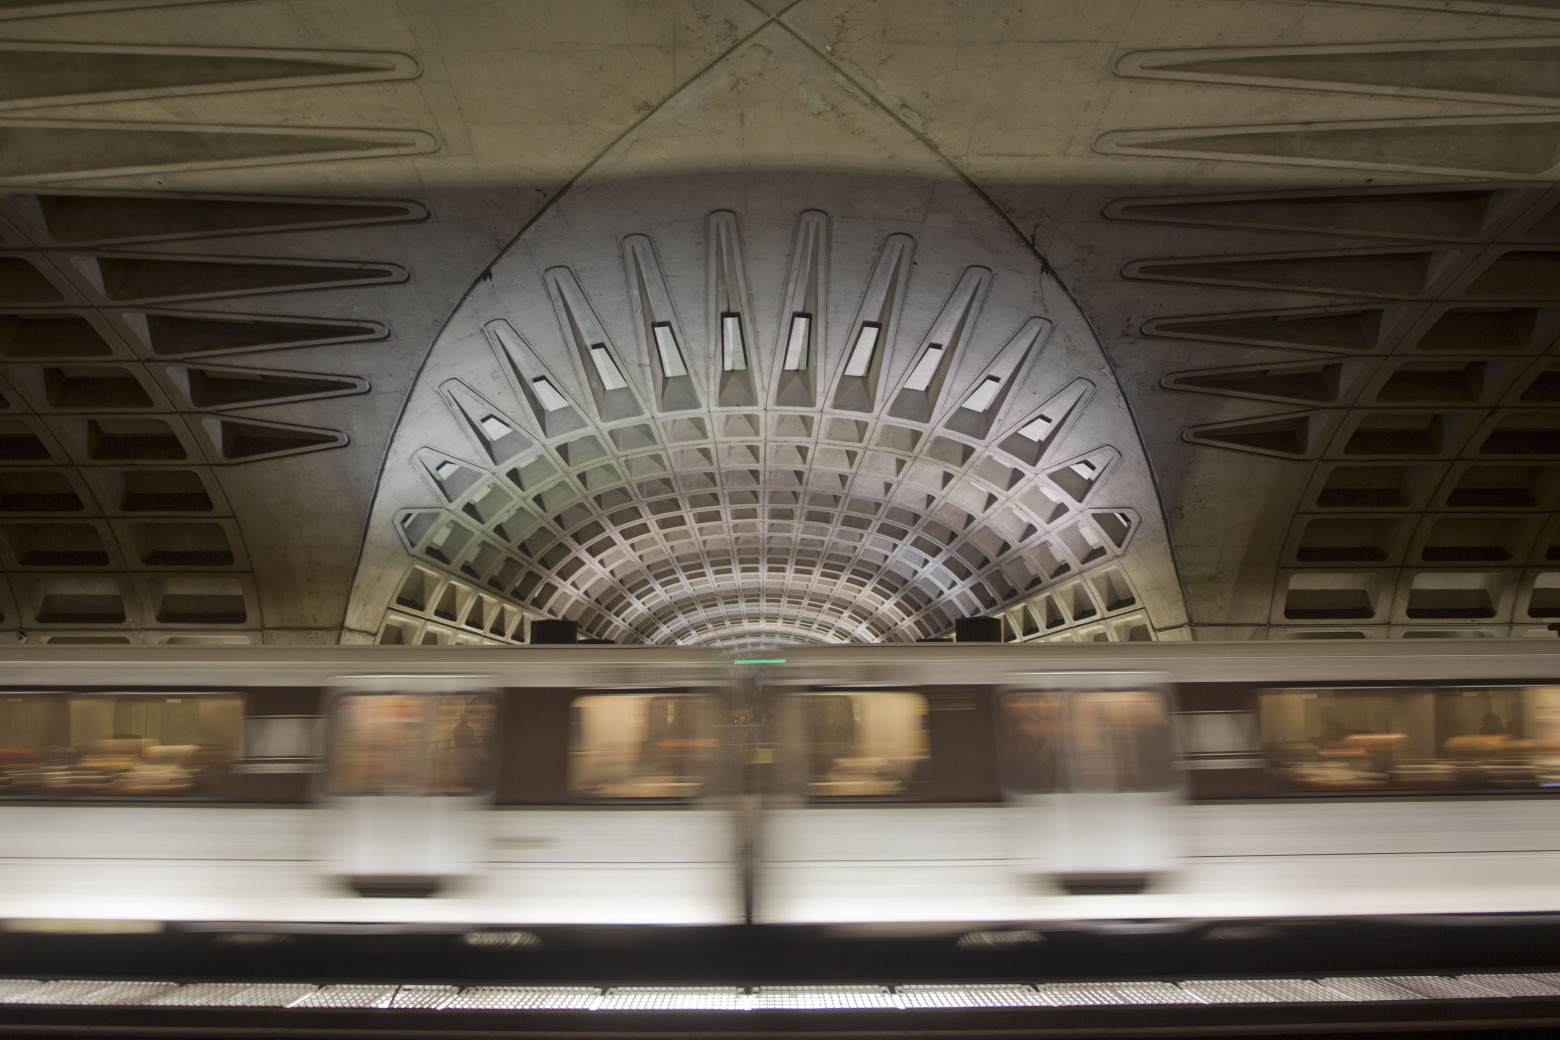 Tracking Metro 24/7: Metro now shuts down at midnight on weekends